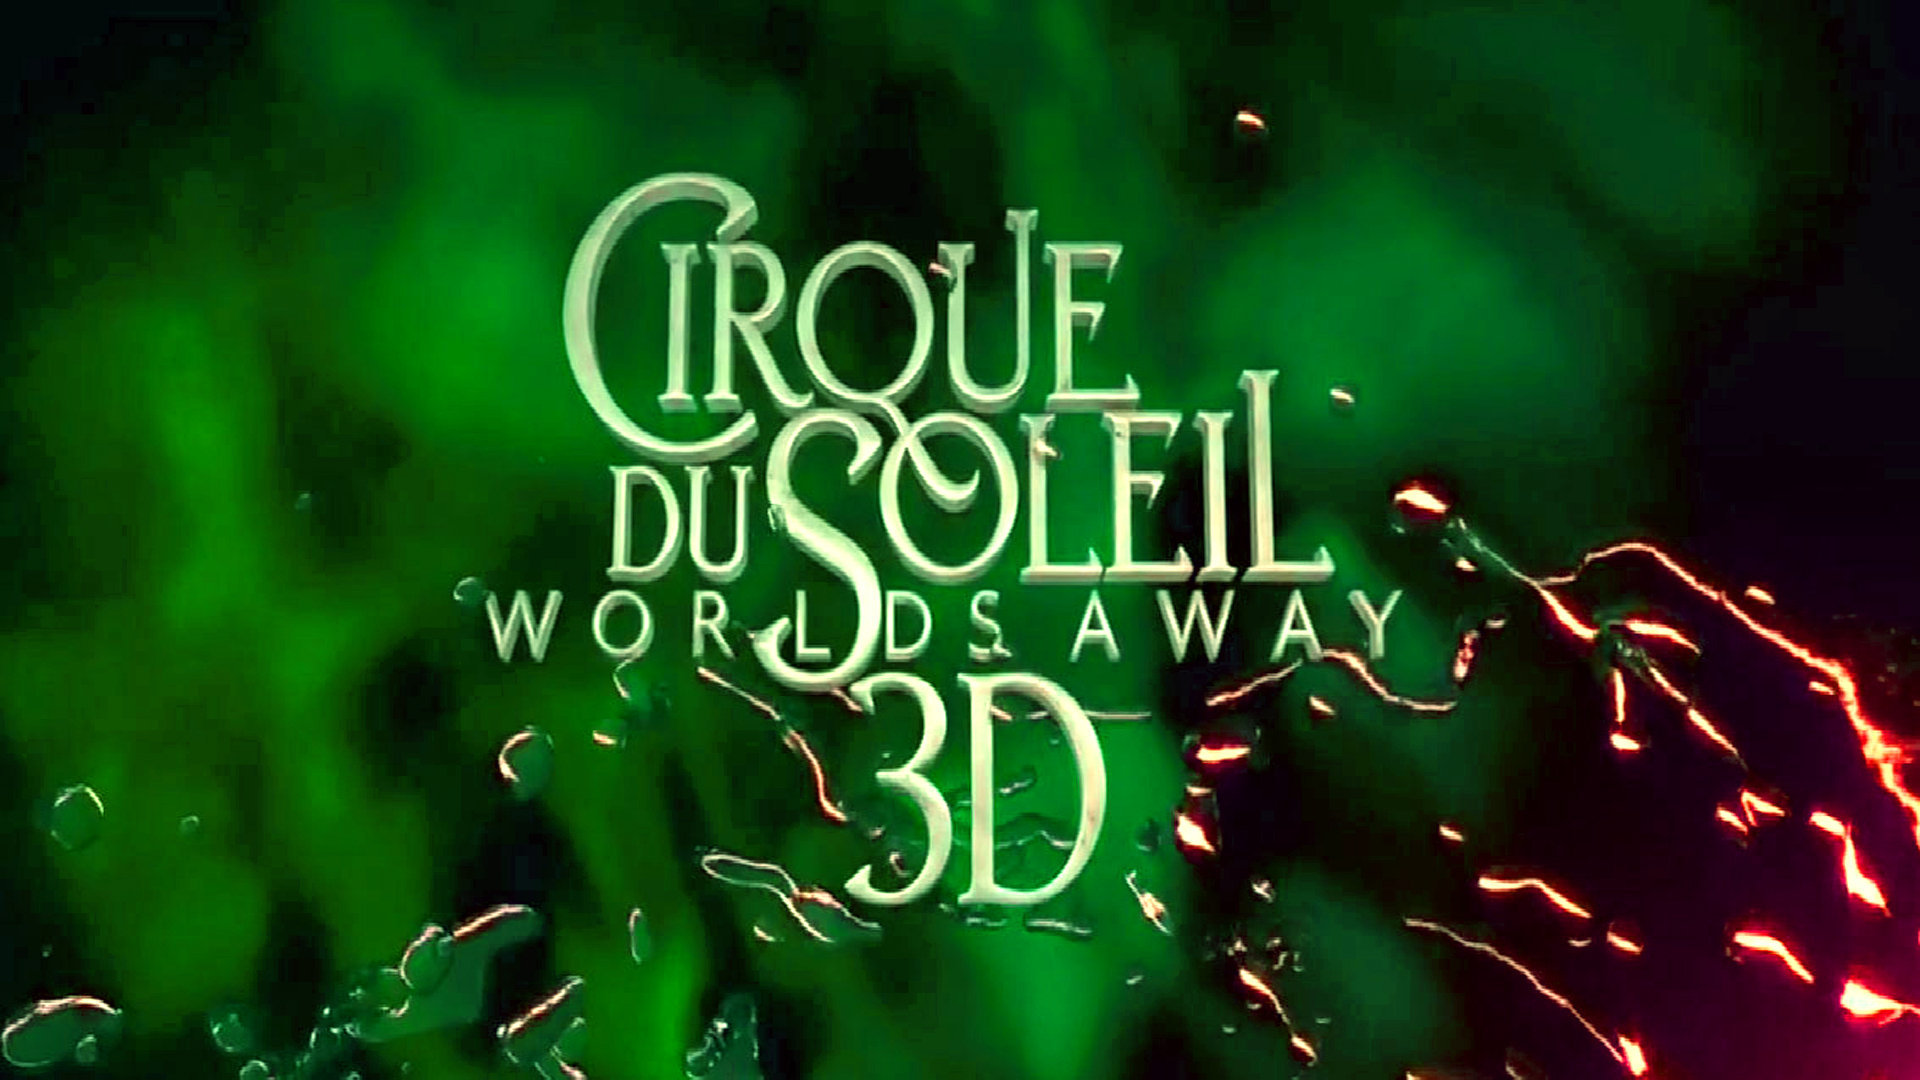 Cirque Du Soleil Wallpaper 19201080 21568 HD Wallpaper Res 1920x1080